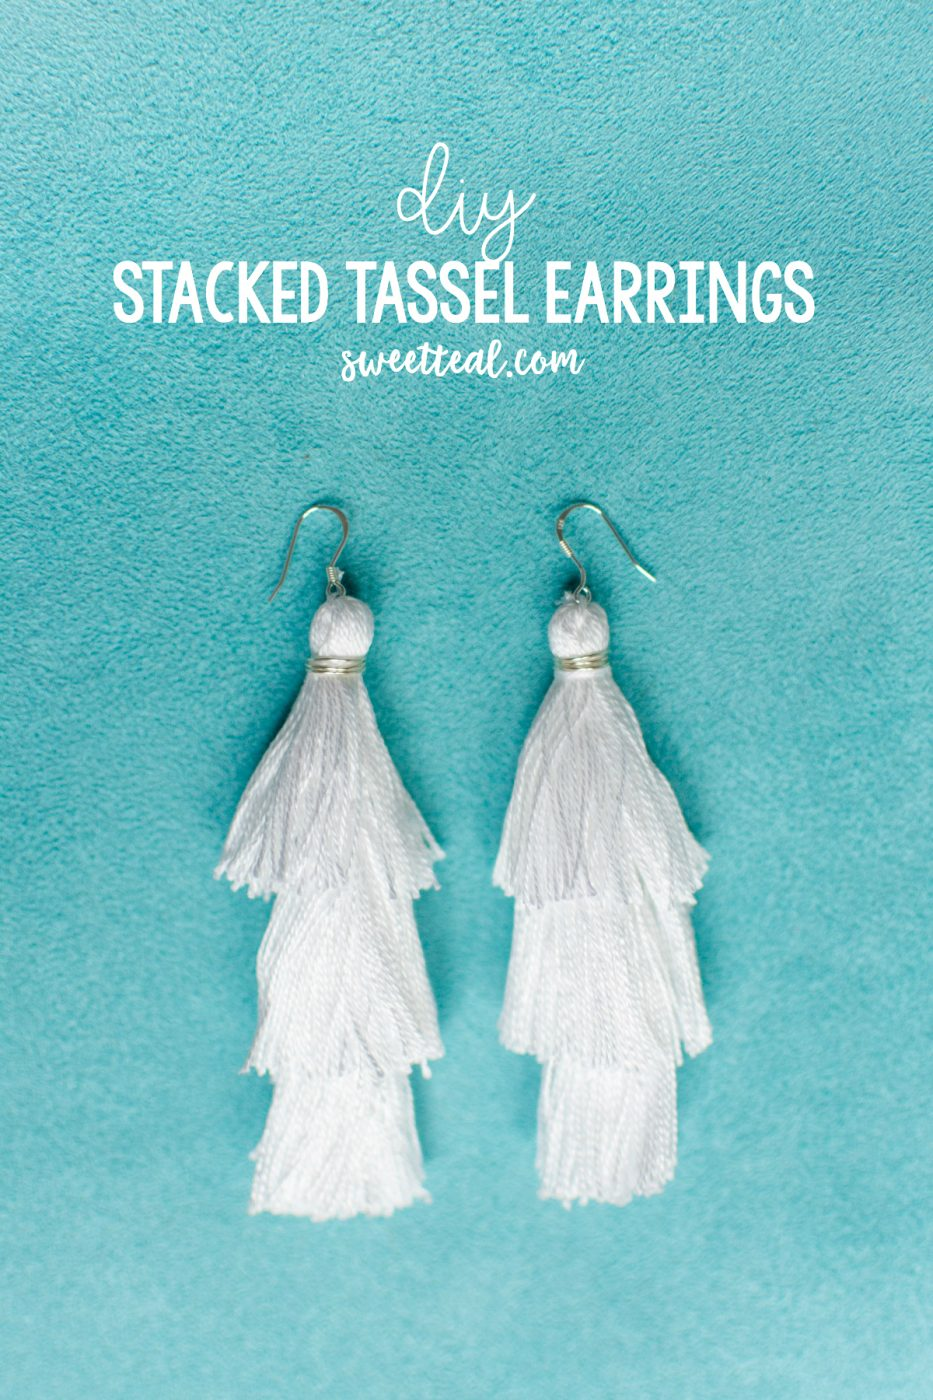 DIY Stacked Tassel Earrings by Jenny of Sweet Teal